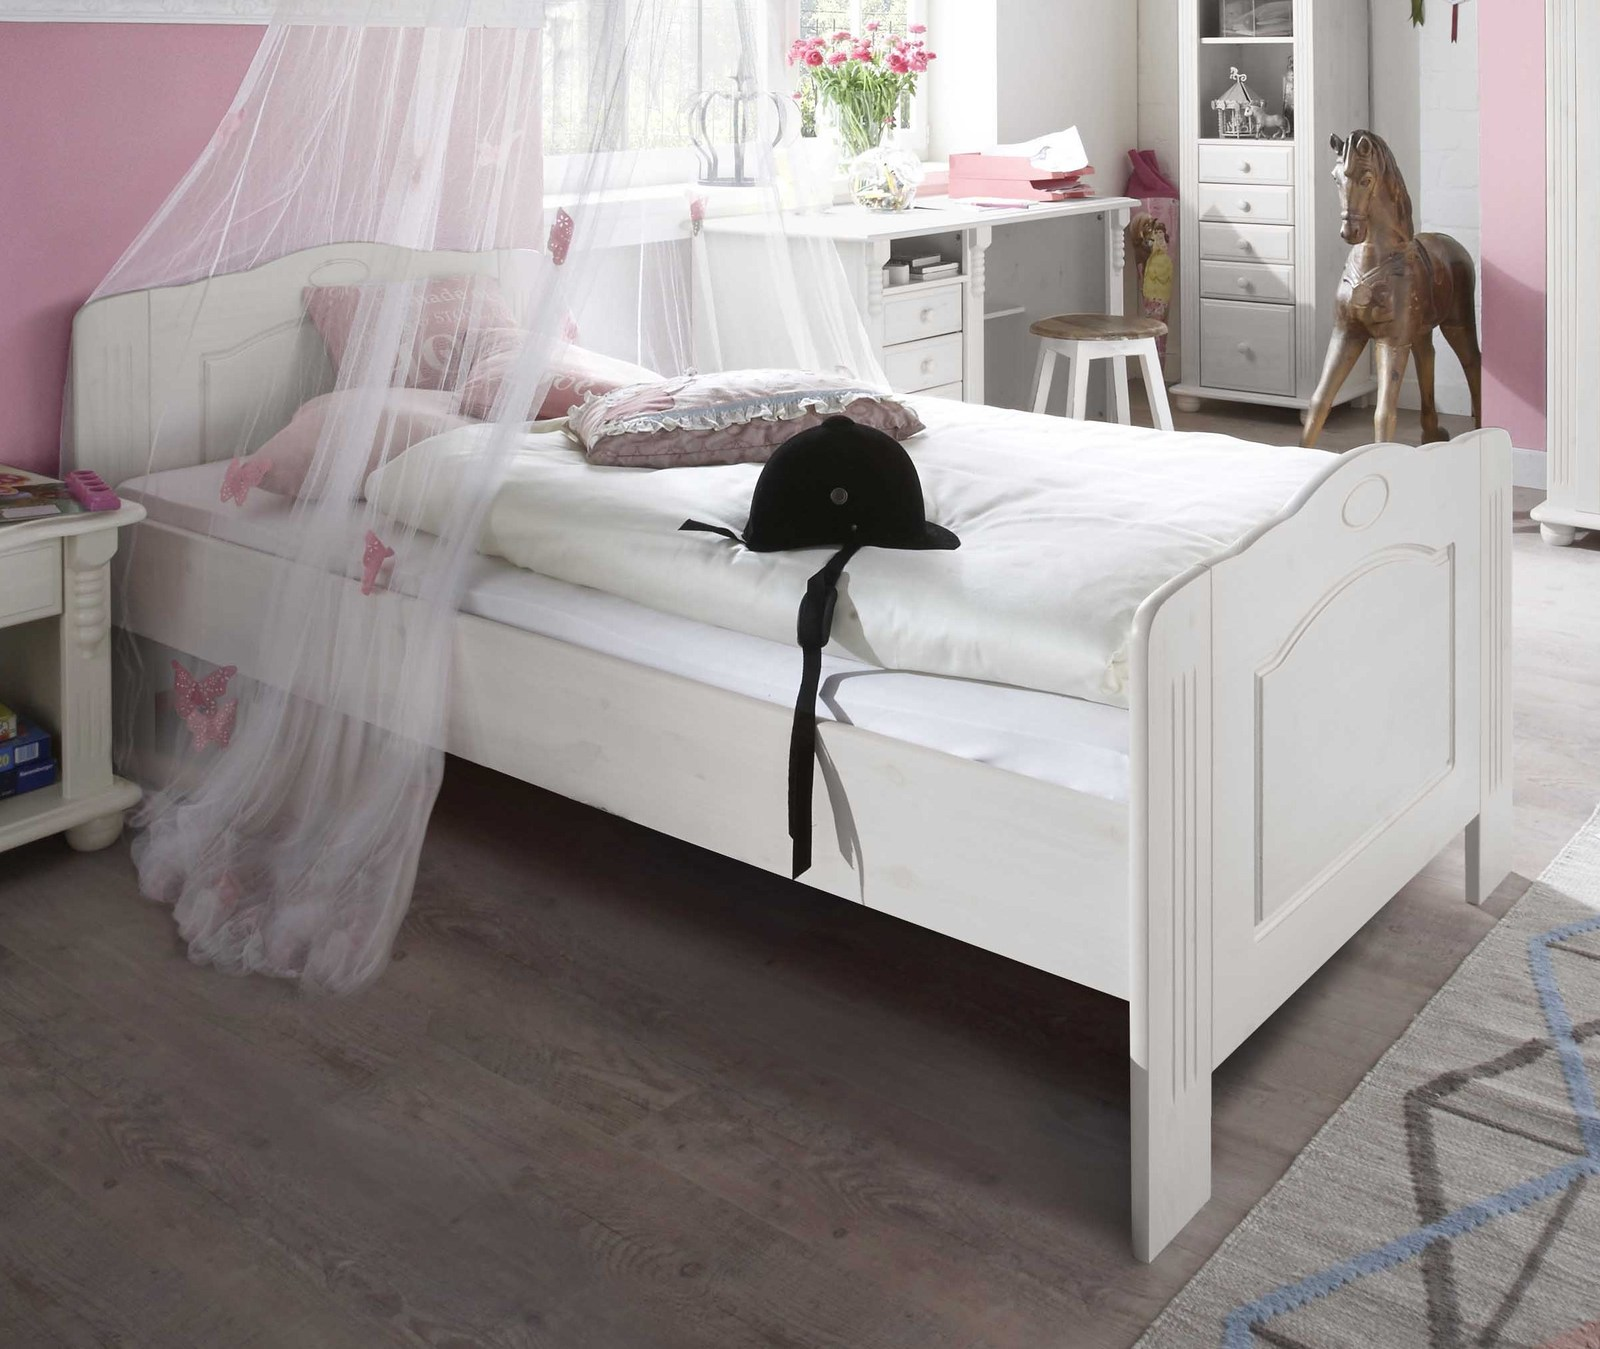 jugendbett im landhausstil 90x200 cm kiefer massiv countryside. Black Bedroom Furniture Sets. Home Design Ideas